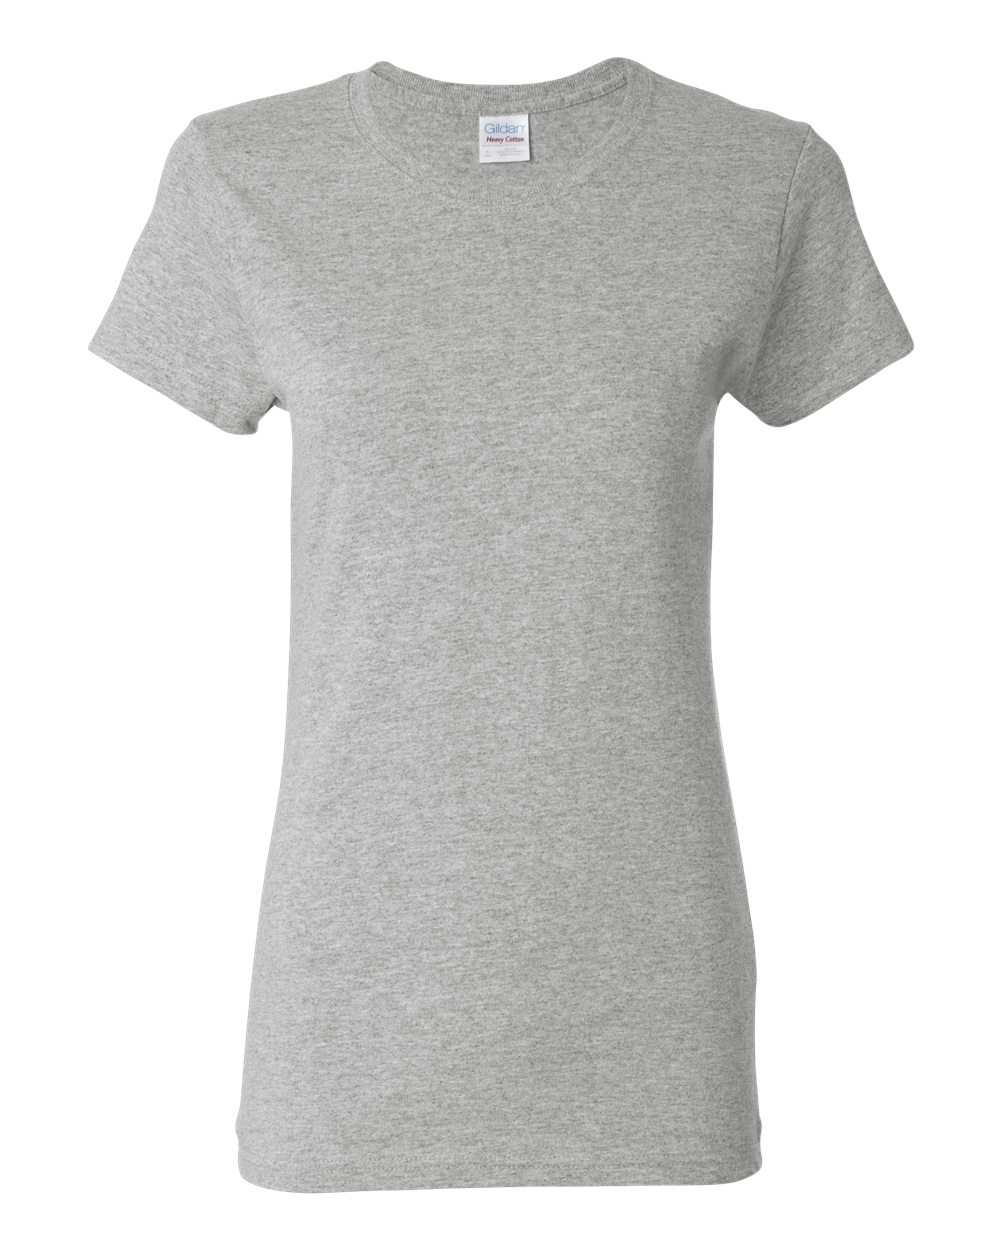 db075ca7d Picture of Gildan Heavy Cotton Ladies T-Shirt